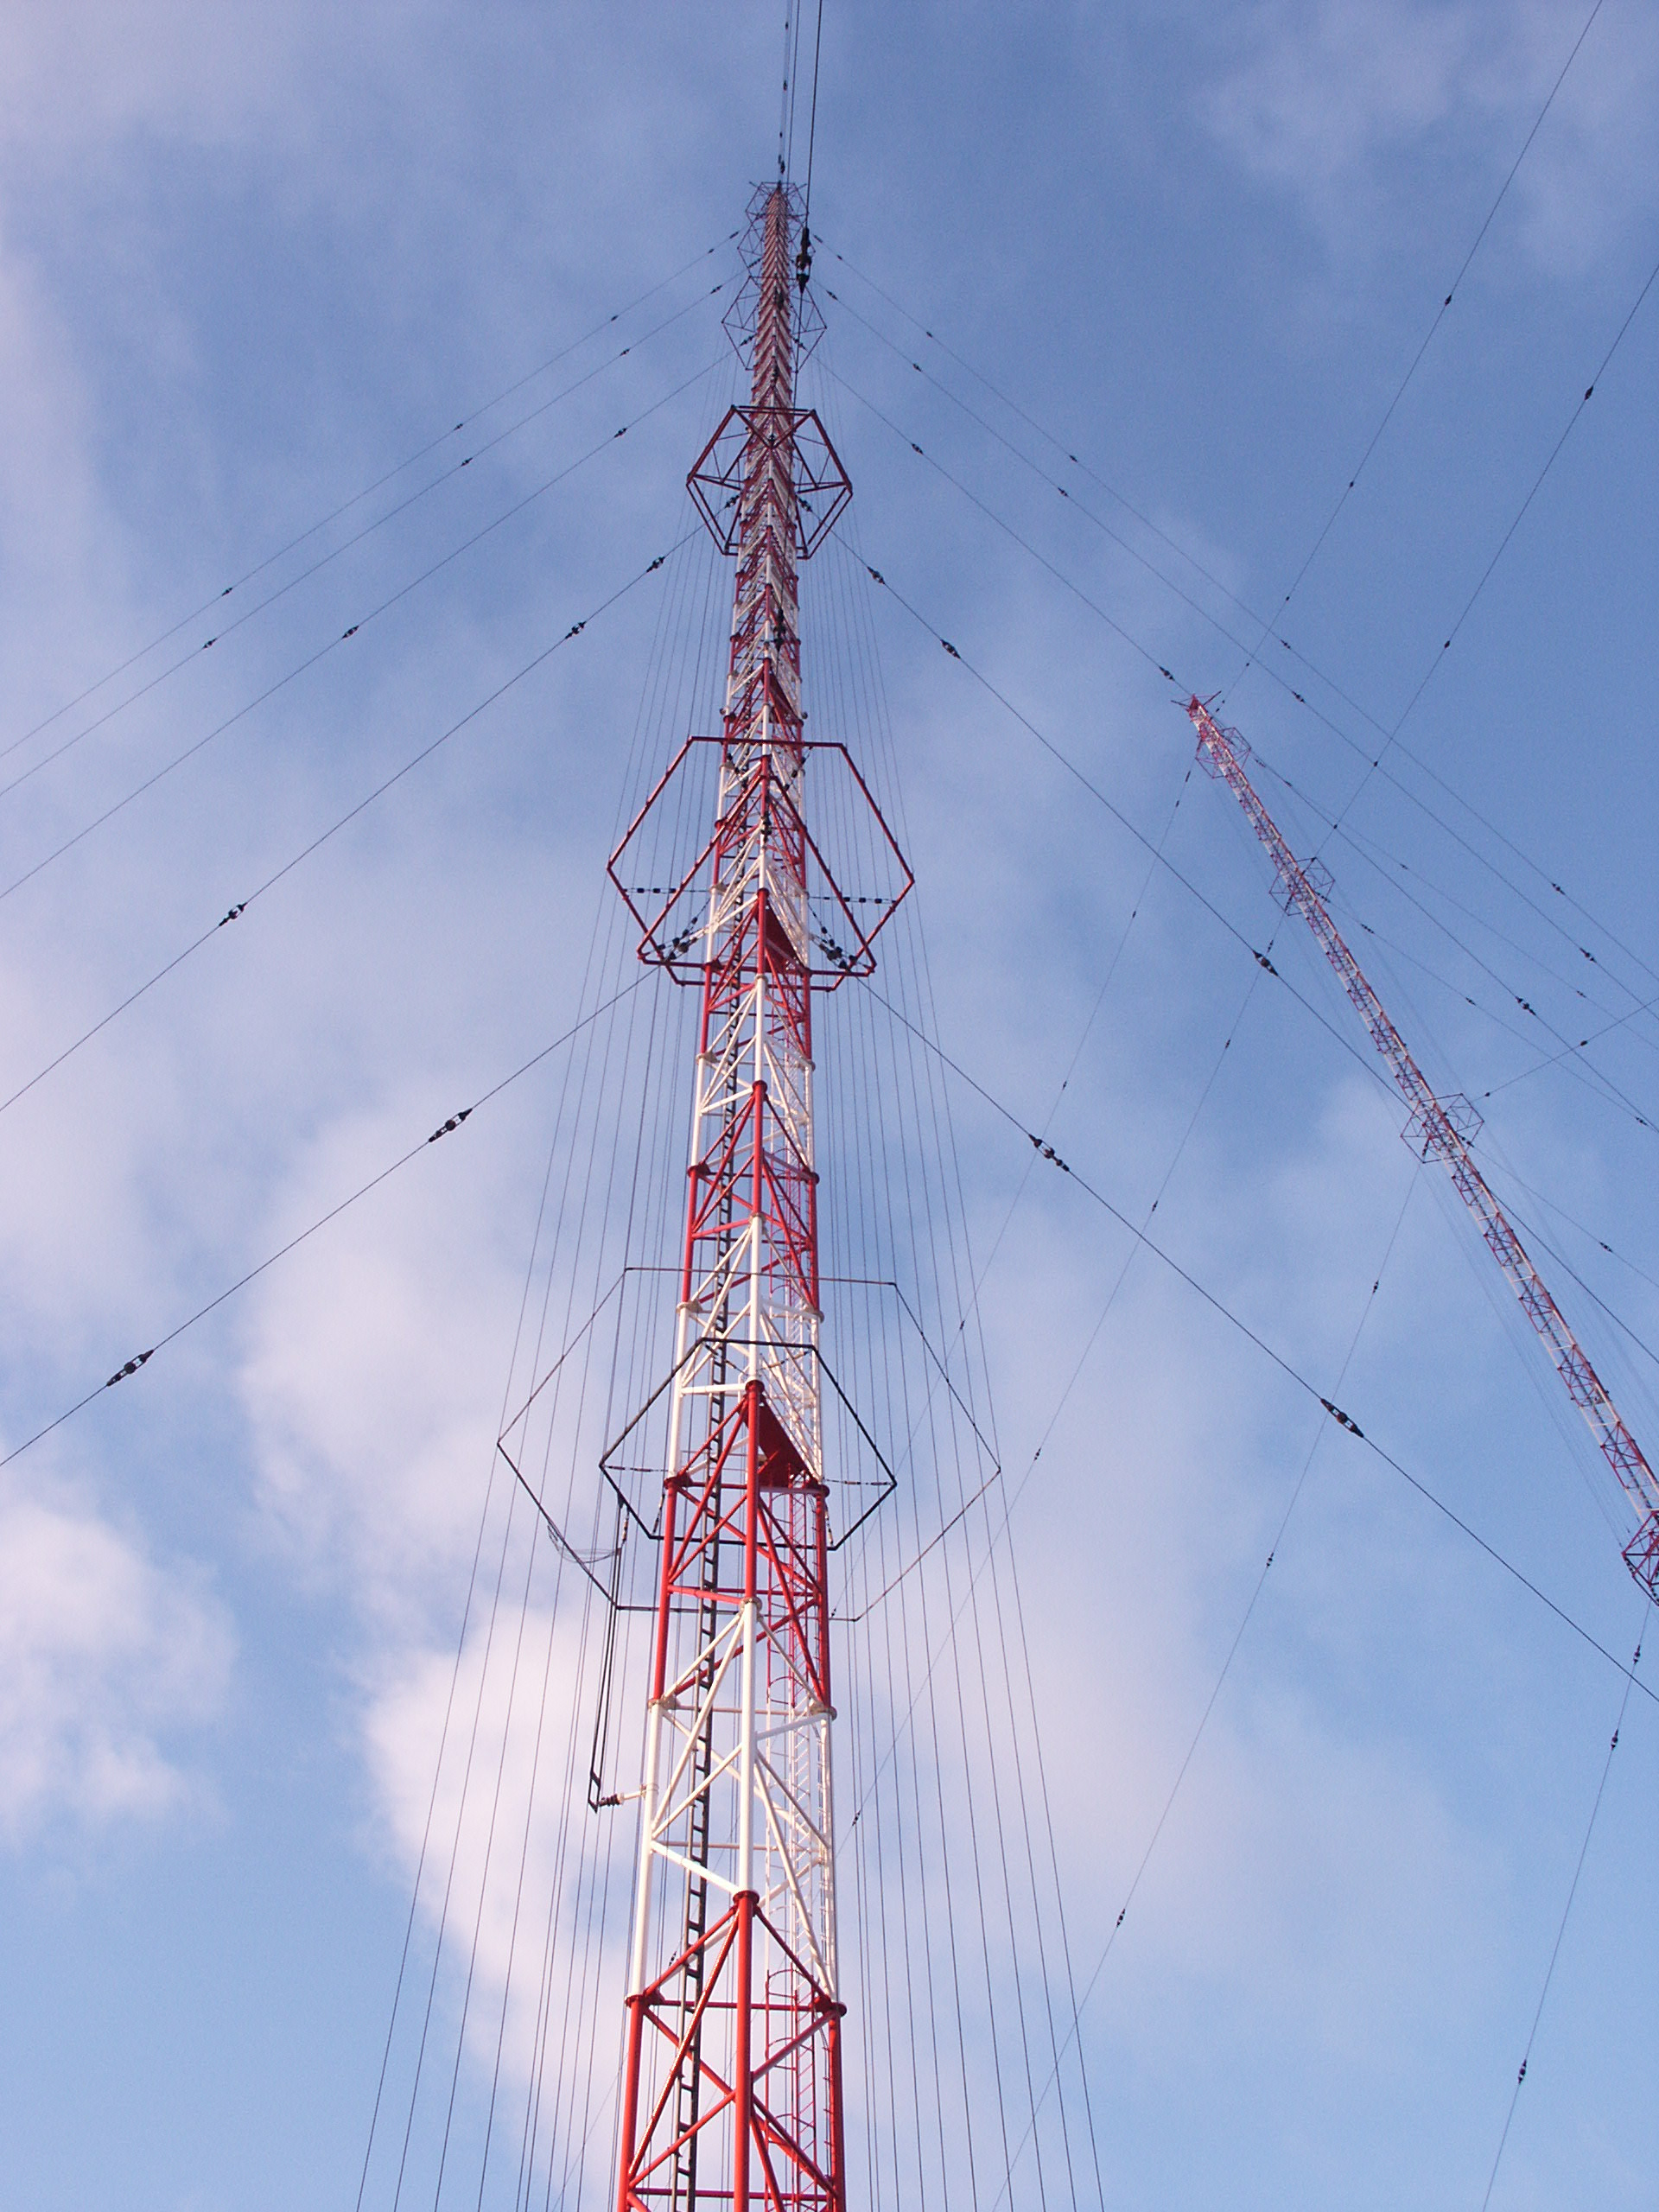 Transmitting antenna tower